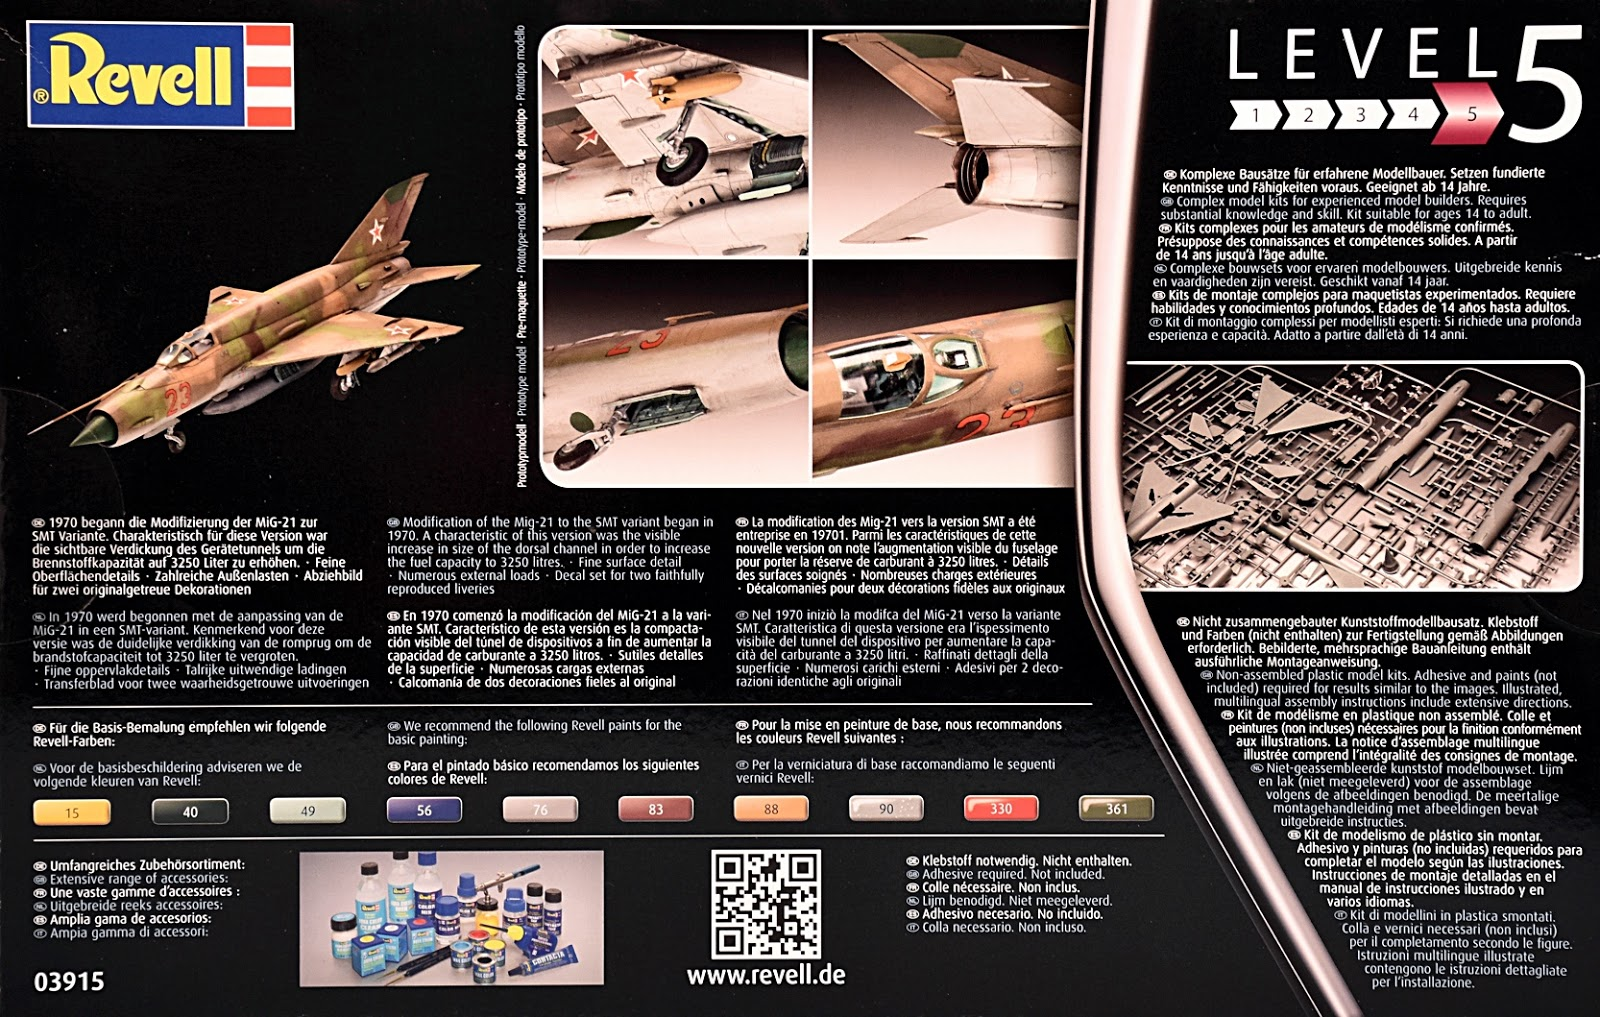 Scale Model News: 1:48 SCALE MiG-21 SMT FROM REVELL